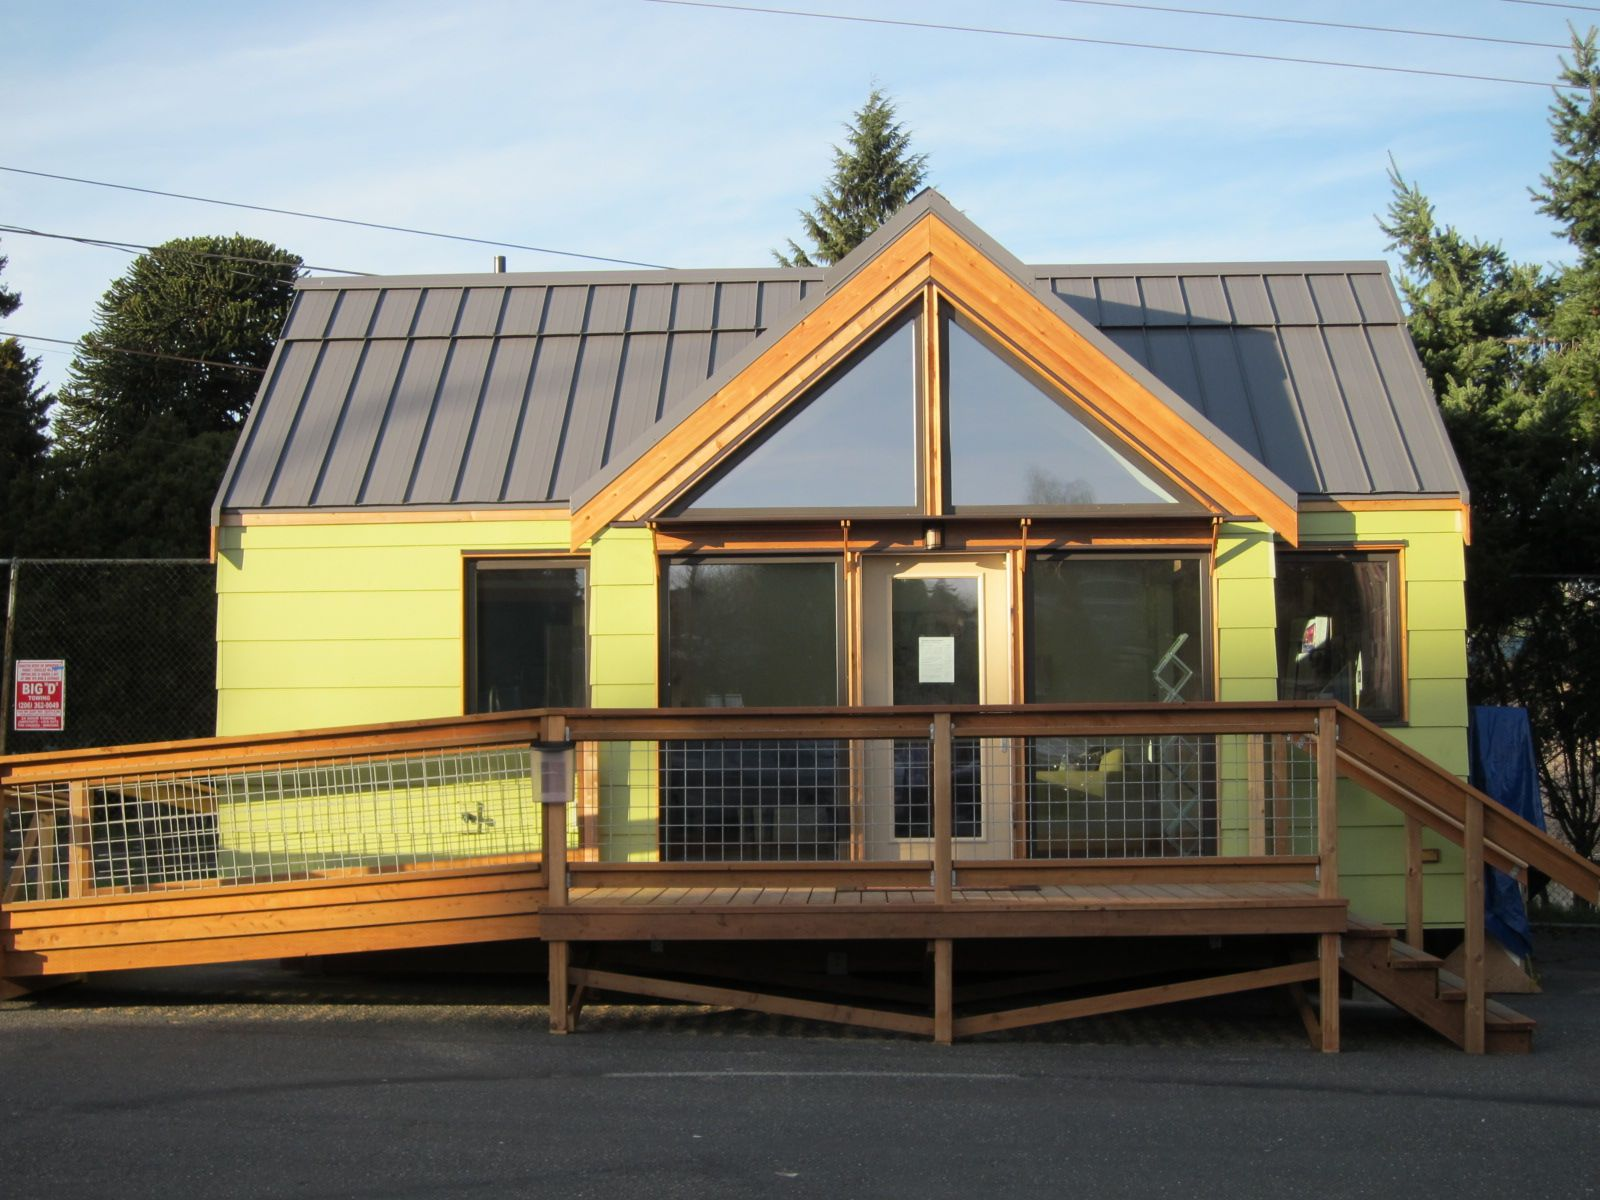 The Mini B A Small Passive House Joseph Giampietro